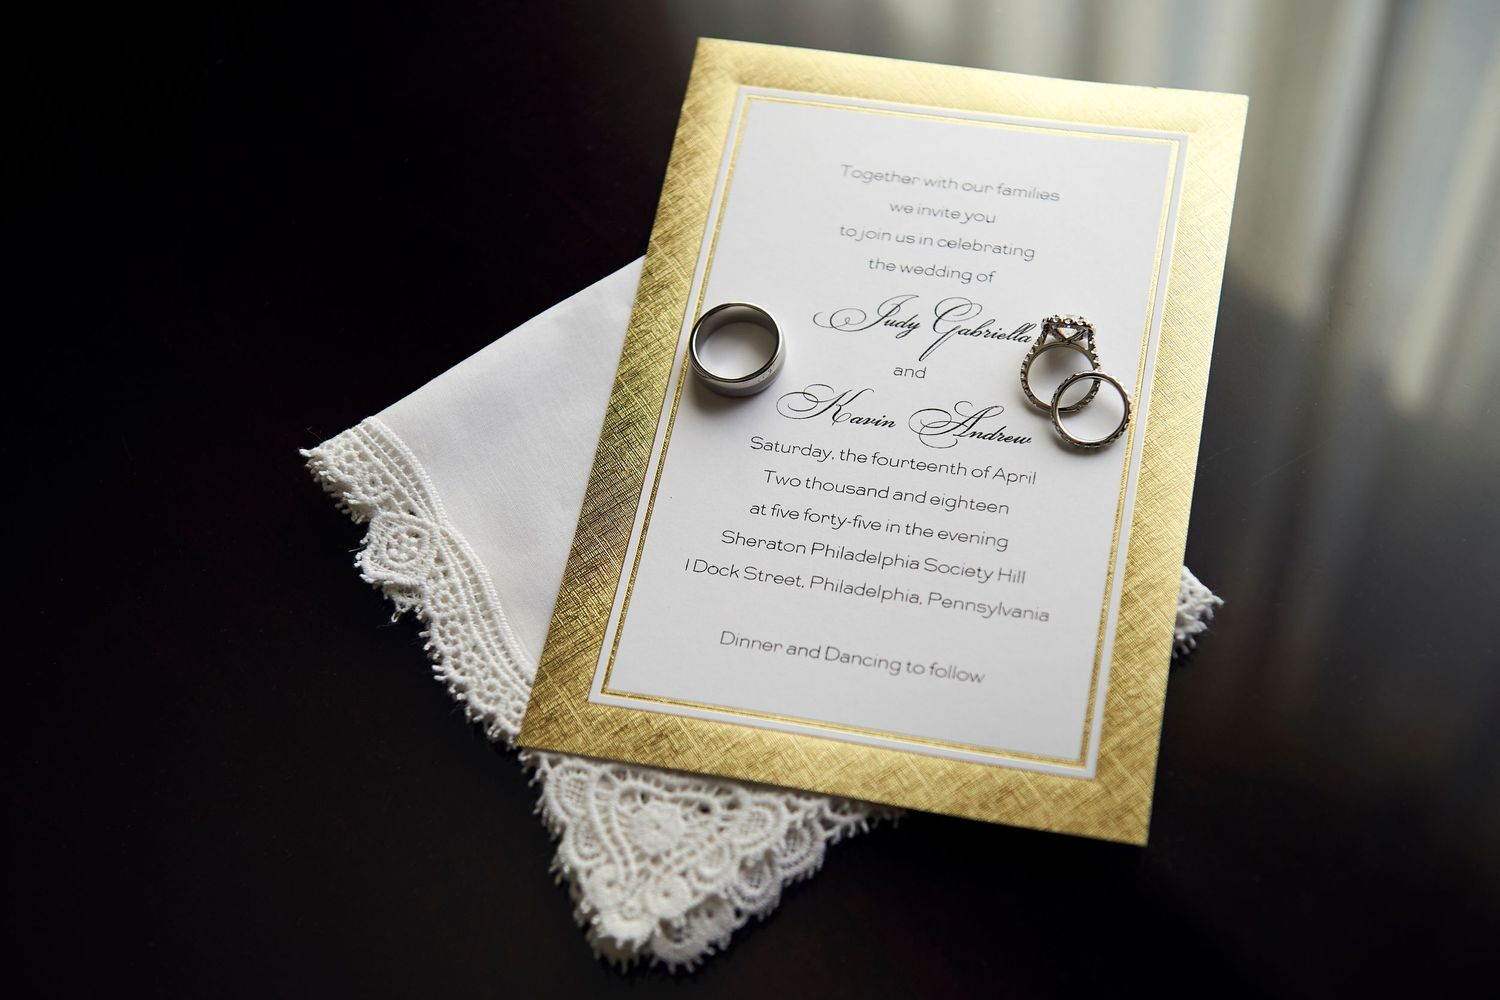 invitations at at the Marriott in Old City Philadelphia